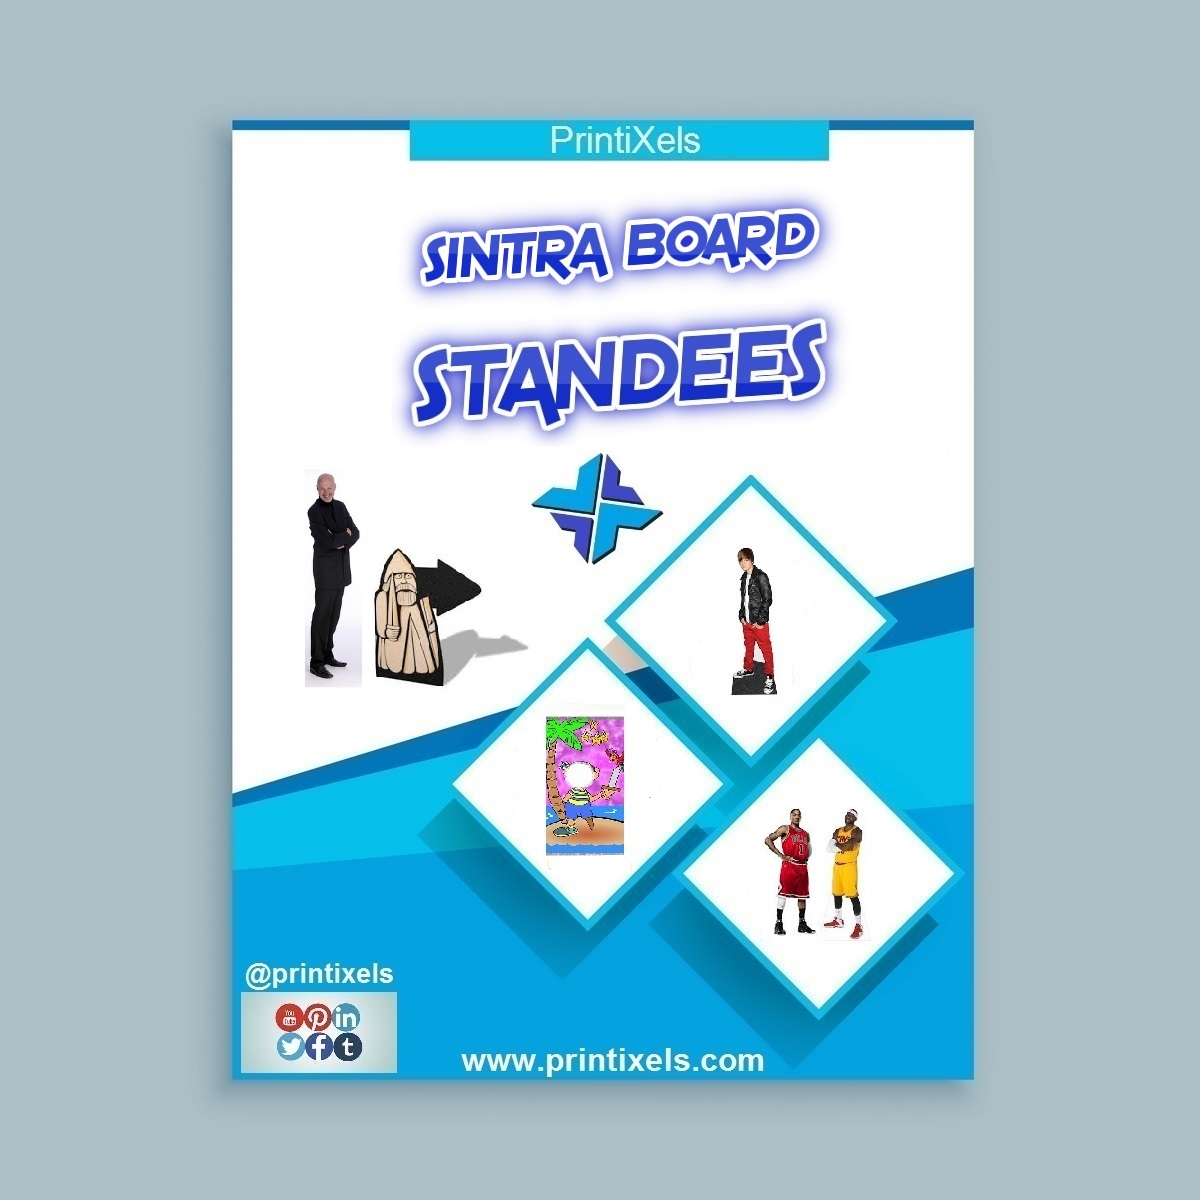 Sintra Board Standees